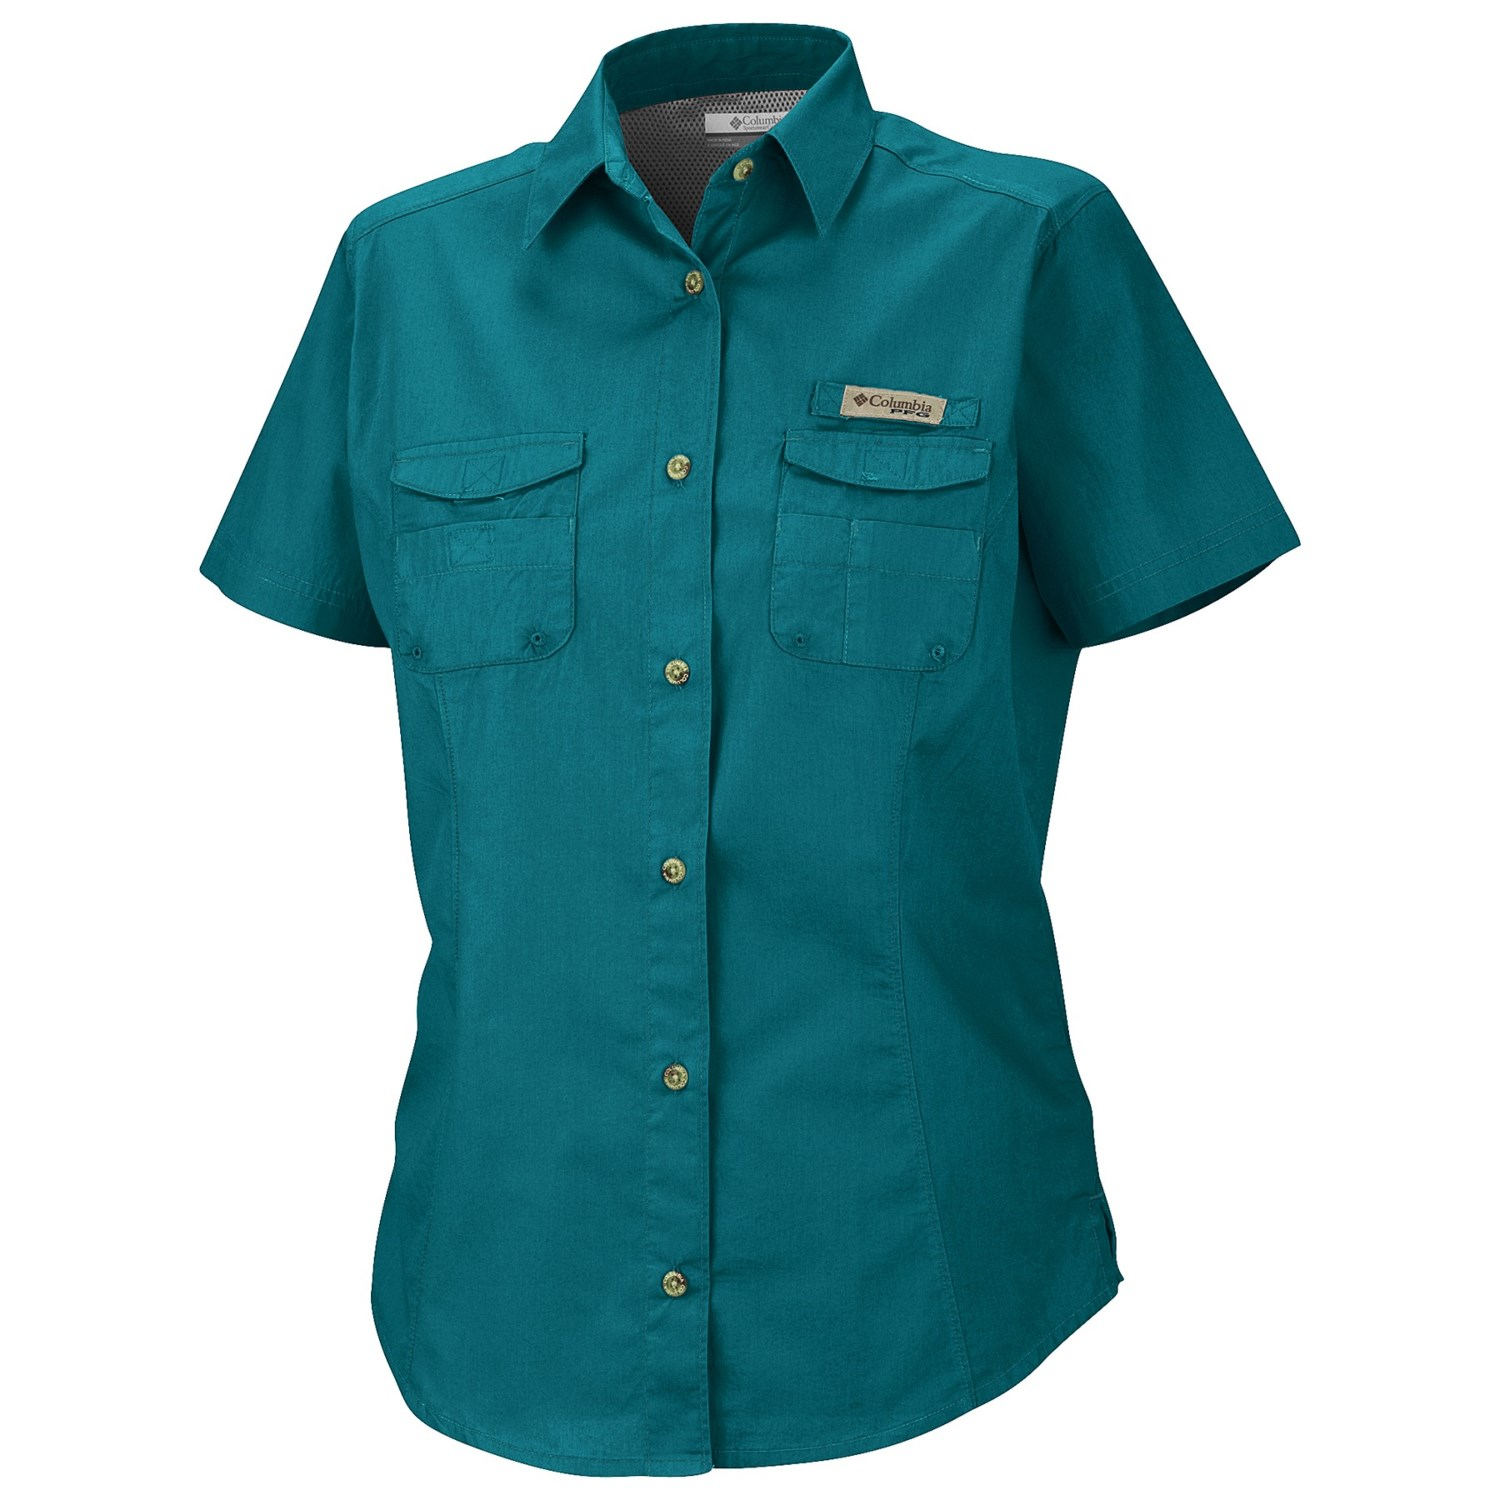 Columbia sportswear pfg bonehead shirt for women 4524c for Columbia shirts womens pfg